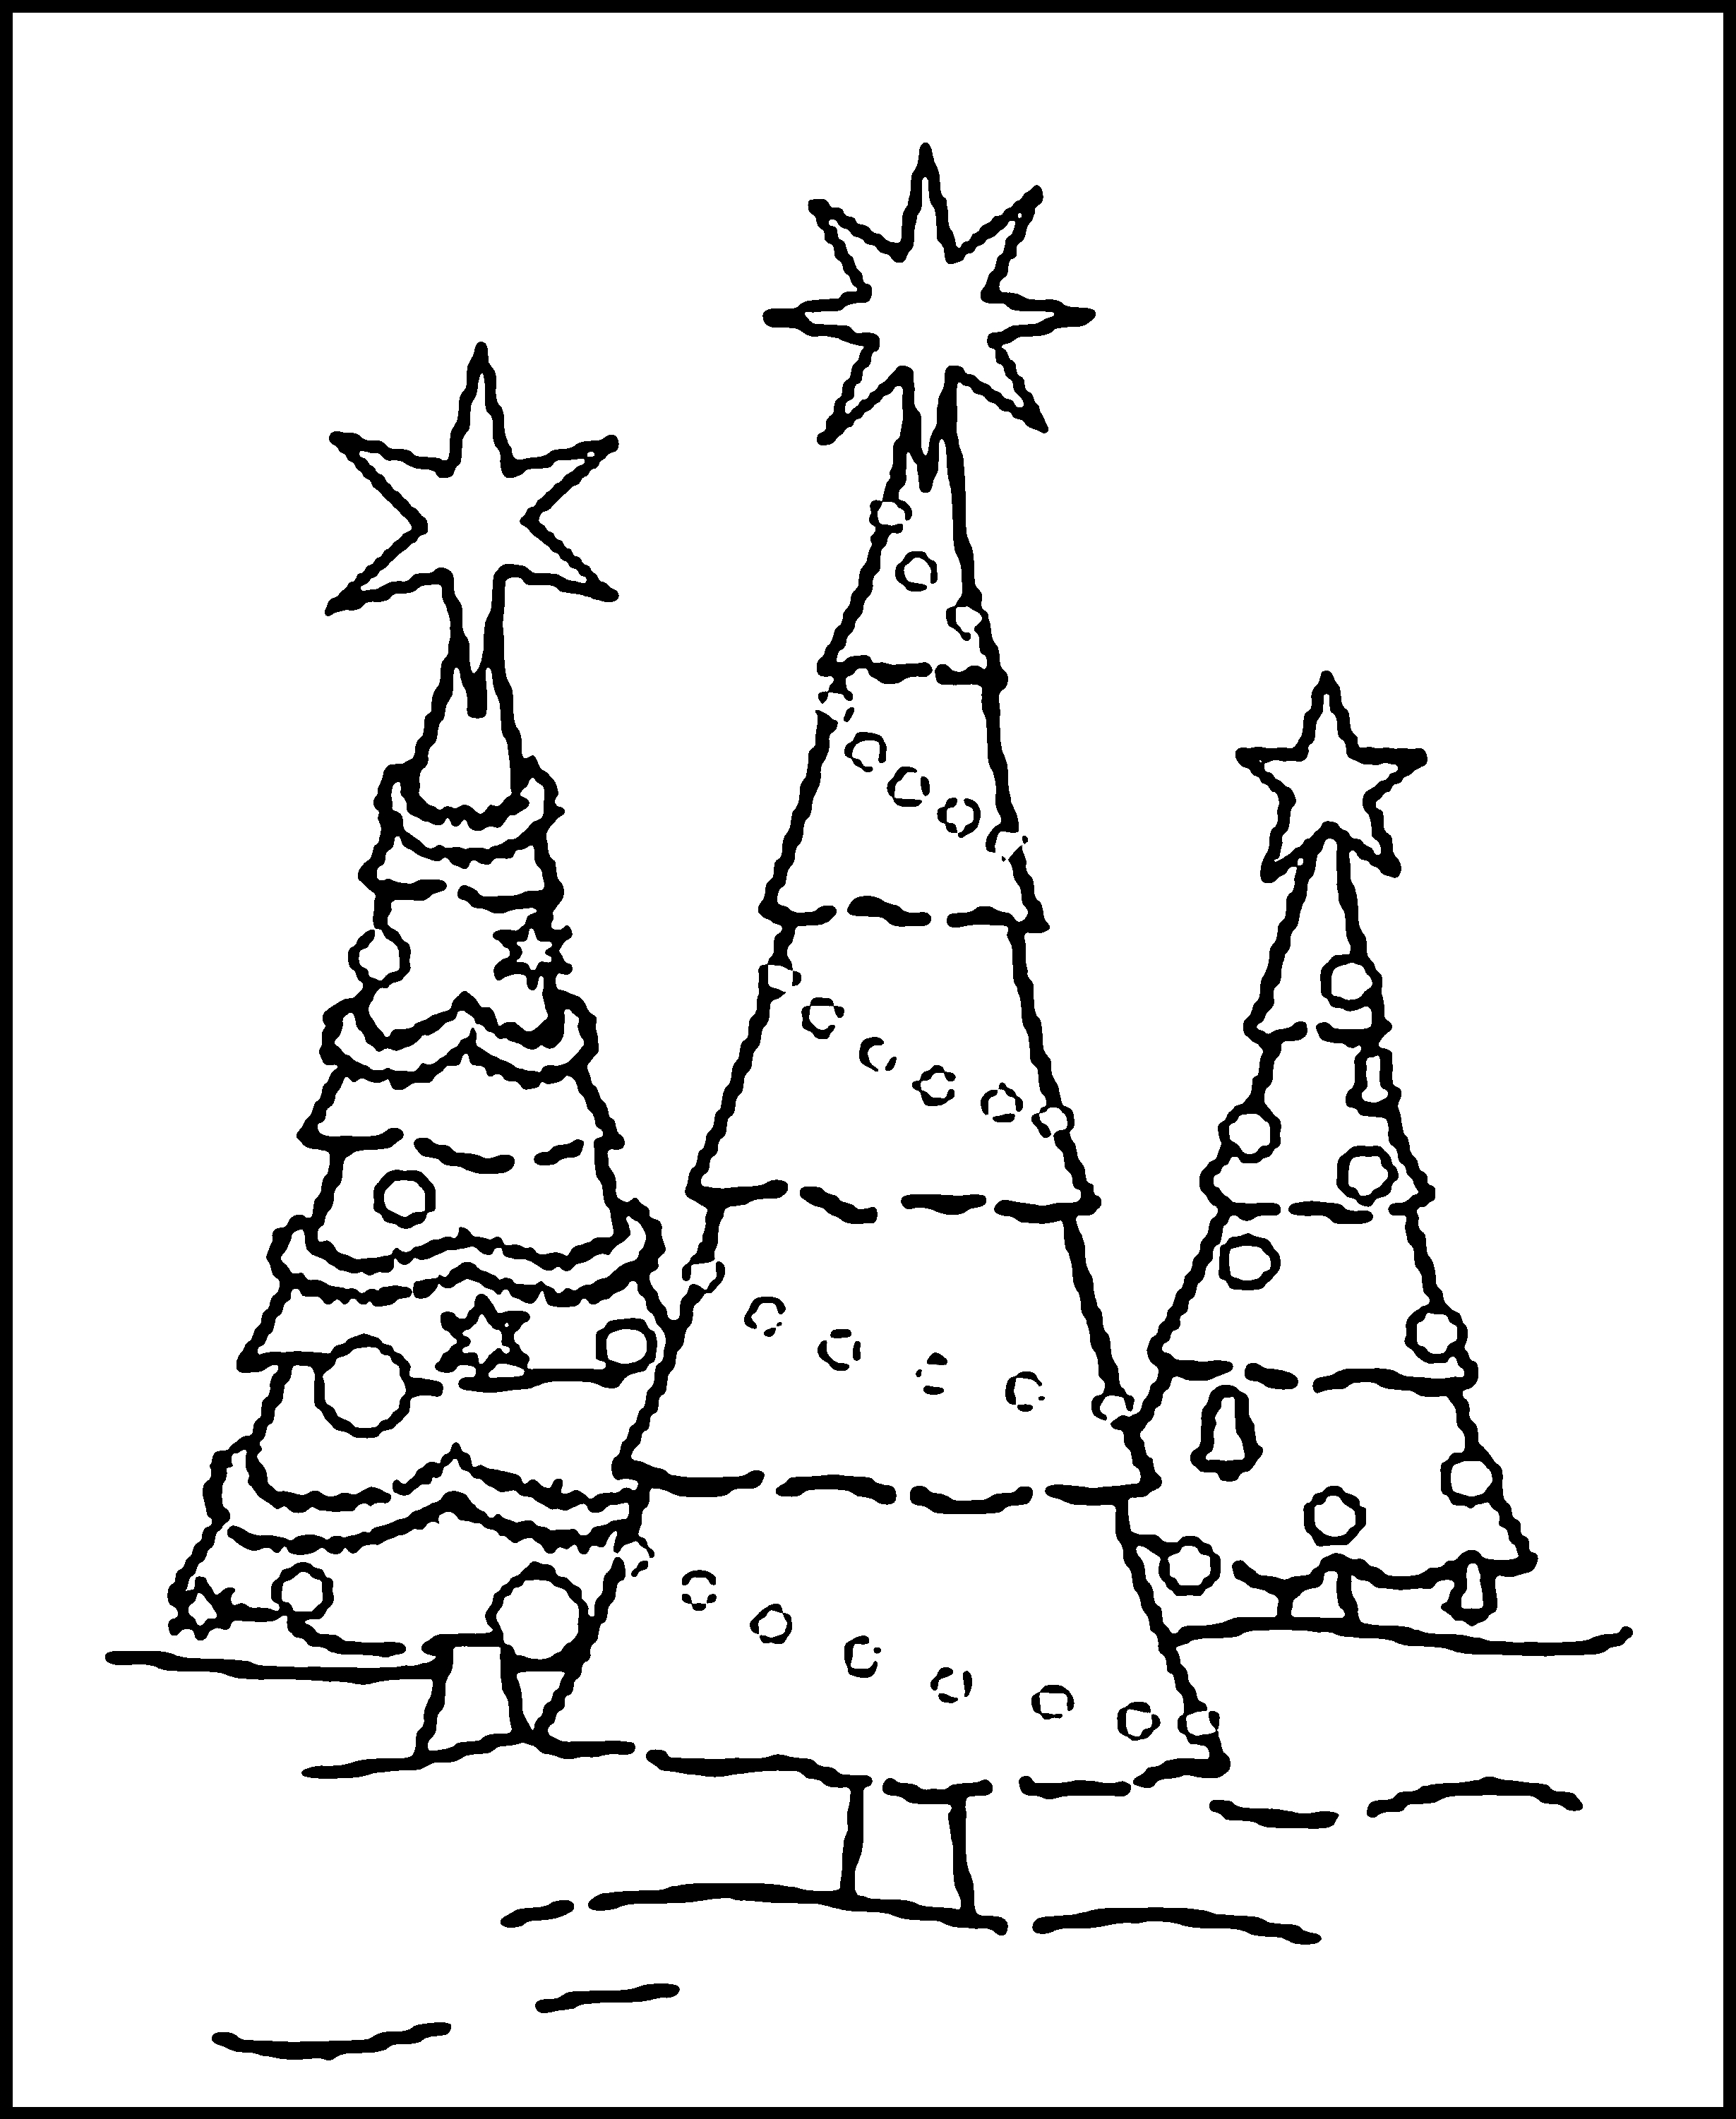 Free Printable Christmas Tree Coloring Pages For Kids - Free Printable Christmas Tree Images